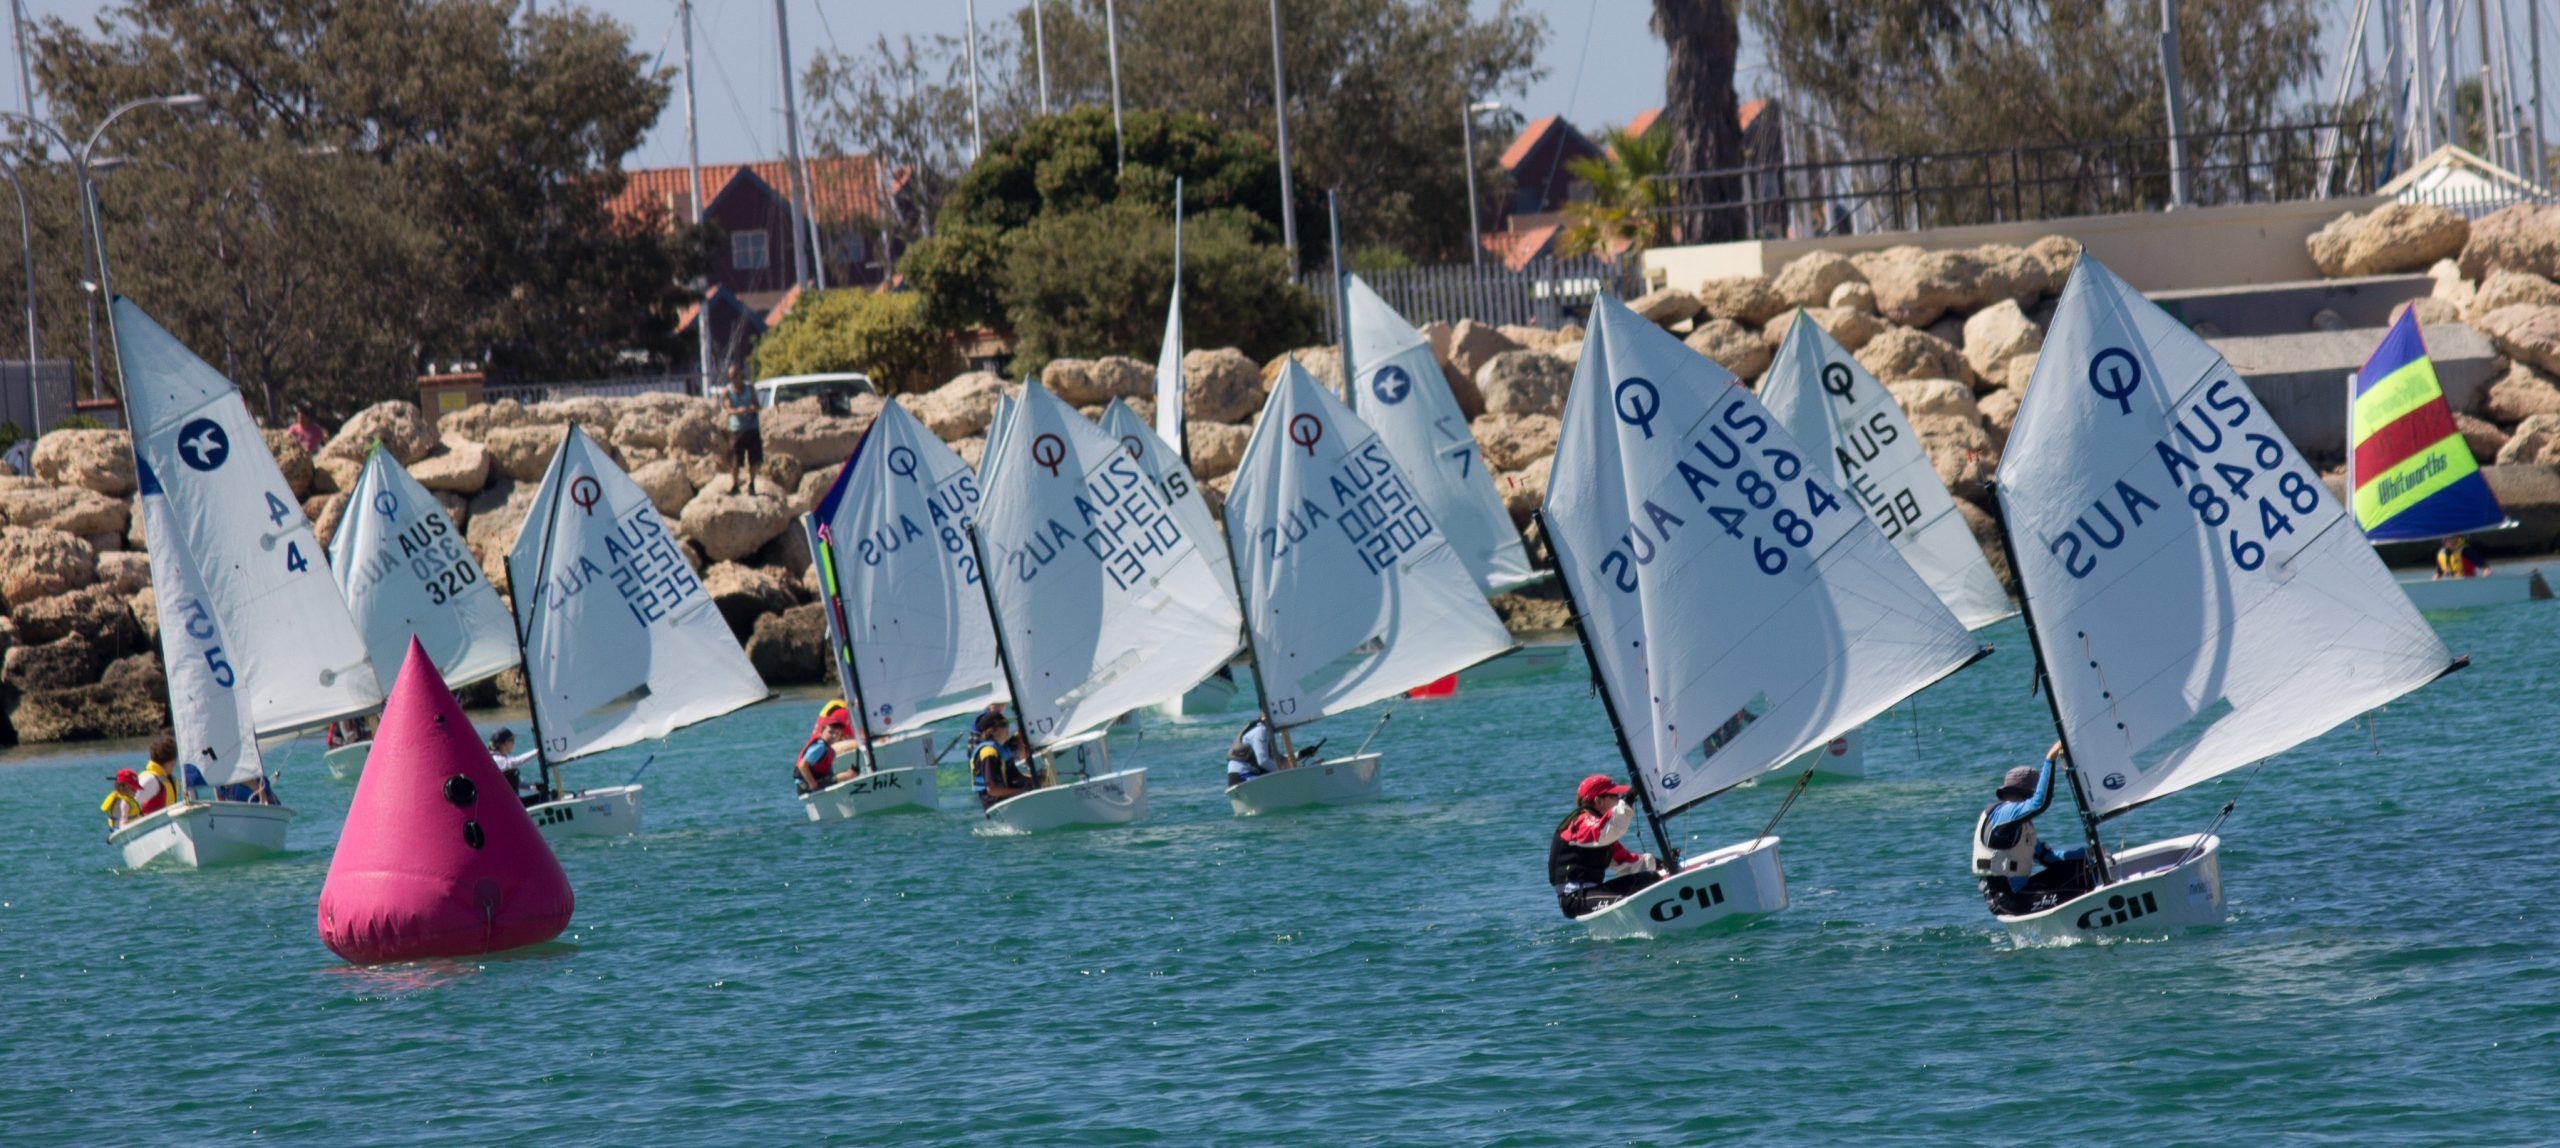 Dinghy racing at Hillarys in Perth. Photo supplied.